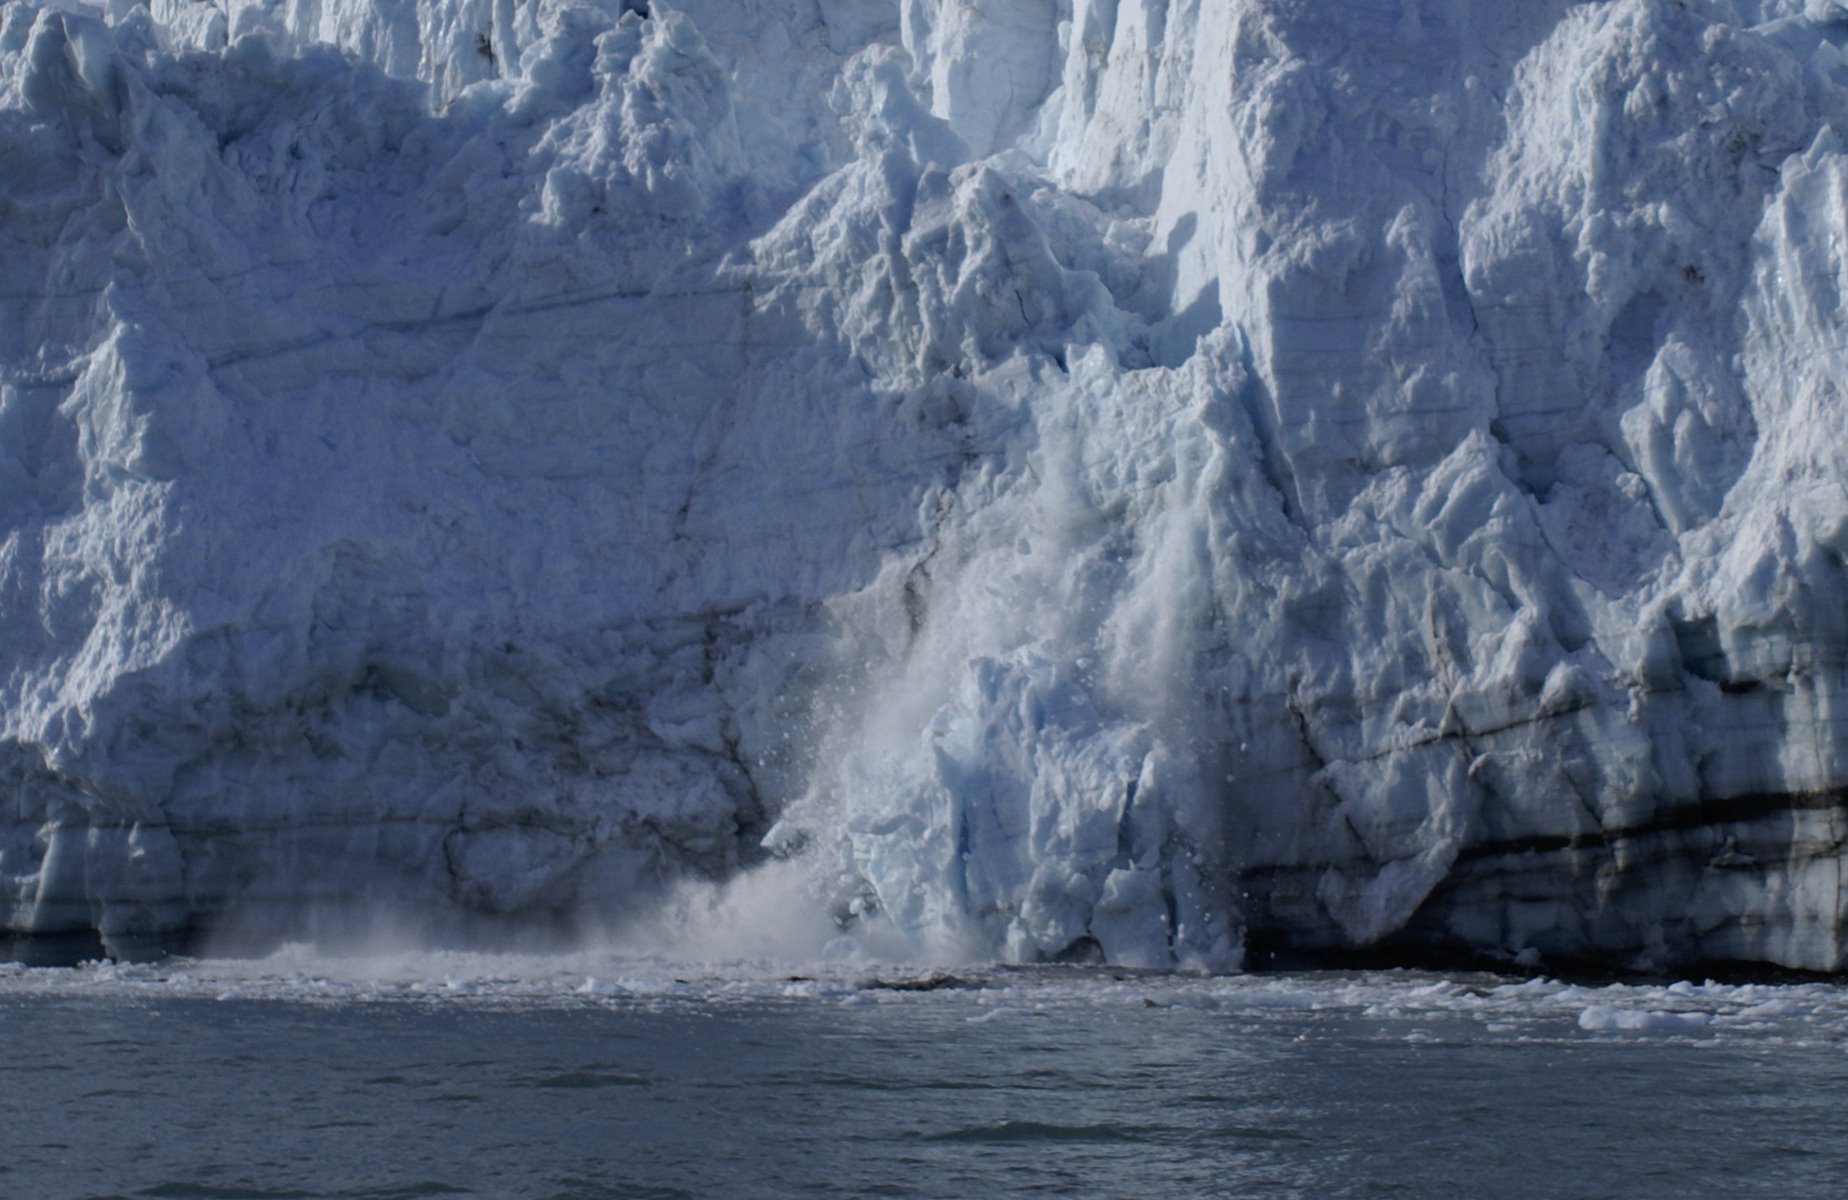 Calving glacier sequence, photo 2